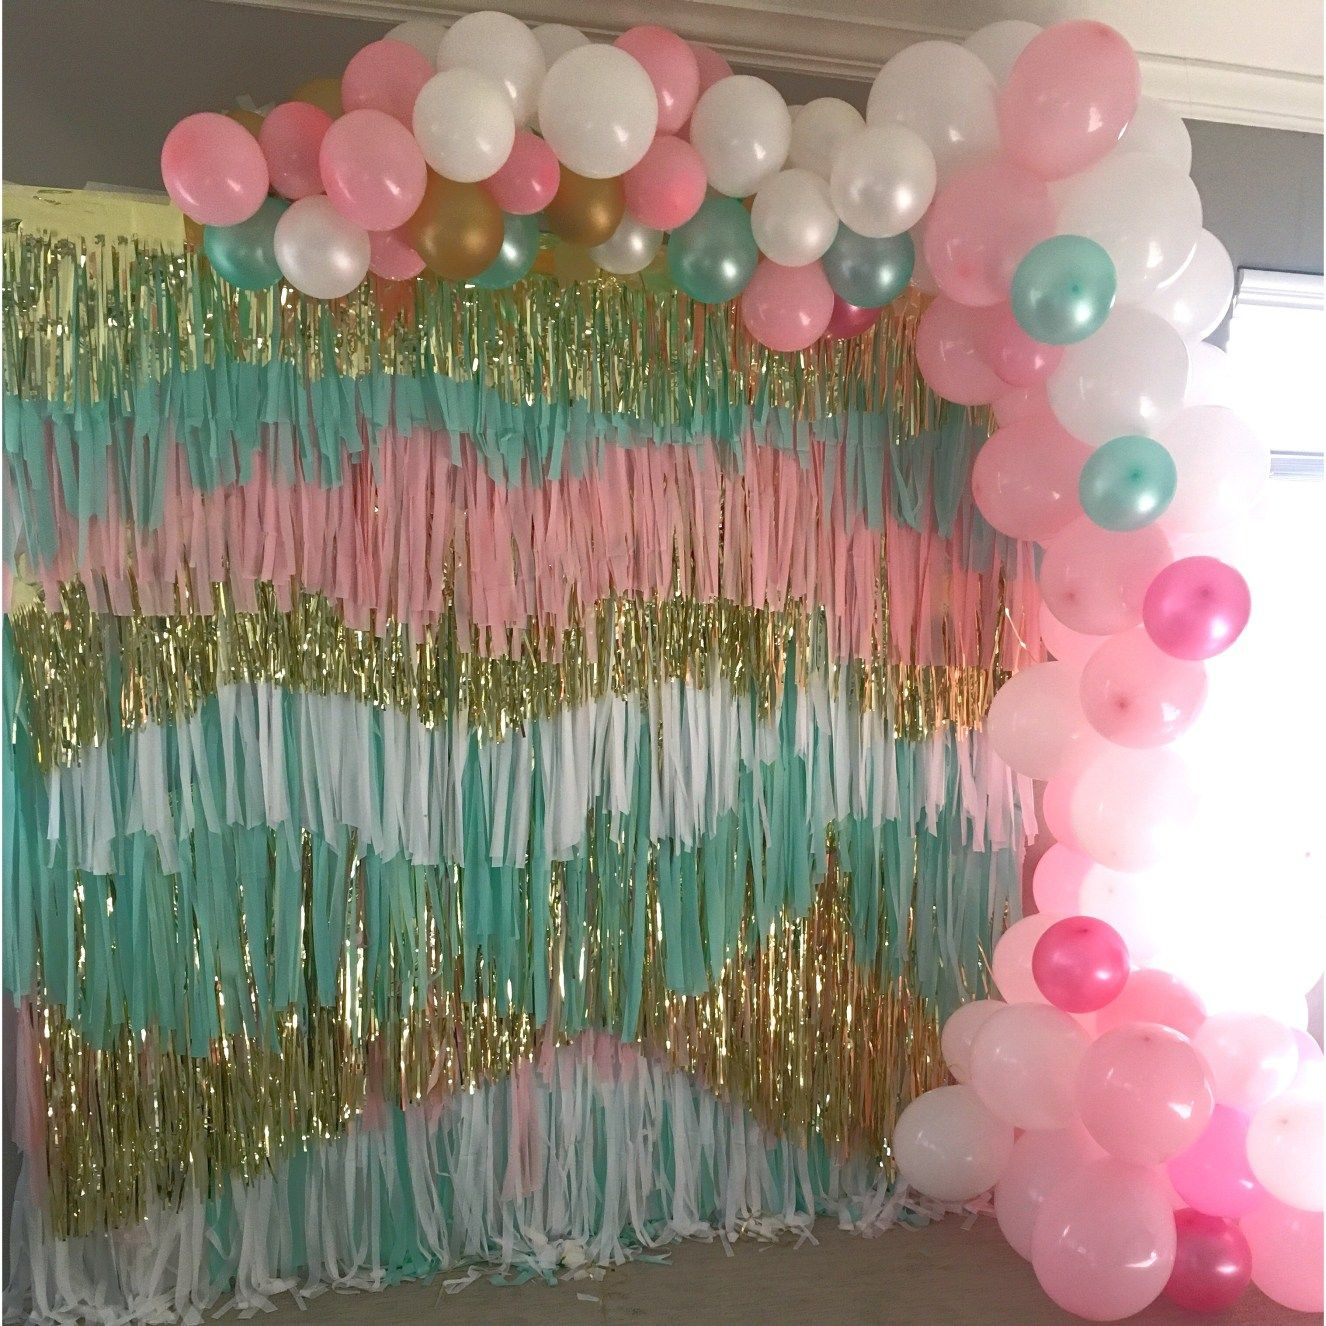 Confetti Streamer Backdrop Balloon Garland - Creativity Made Easy